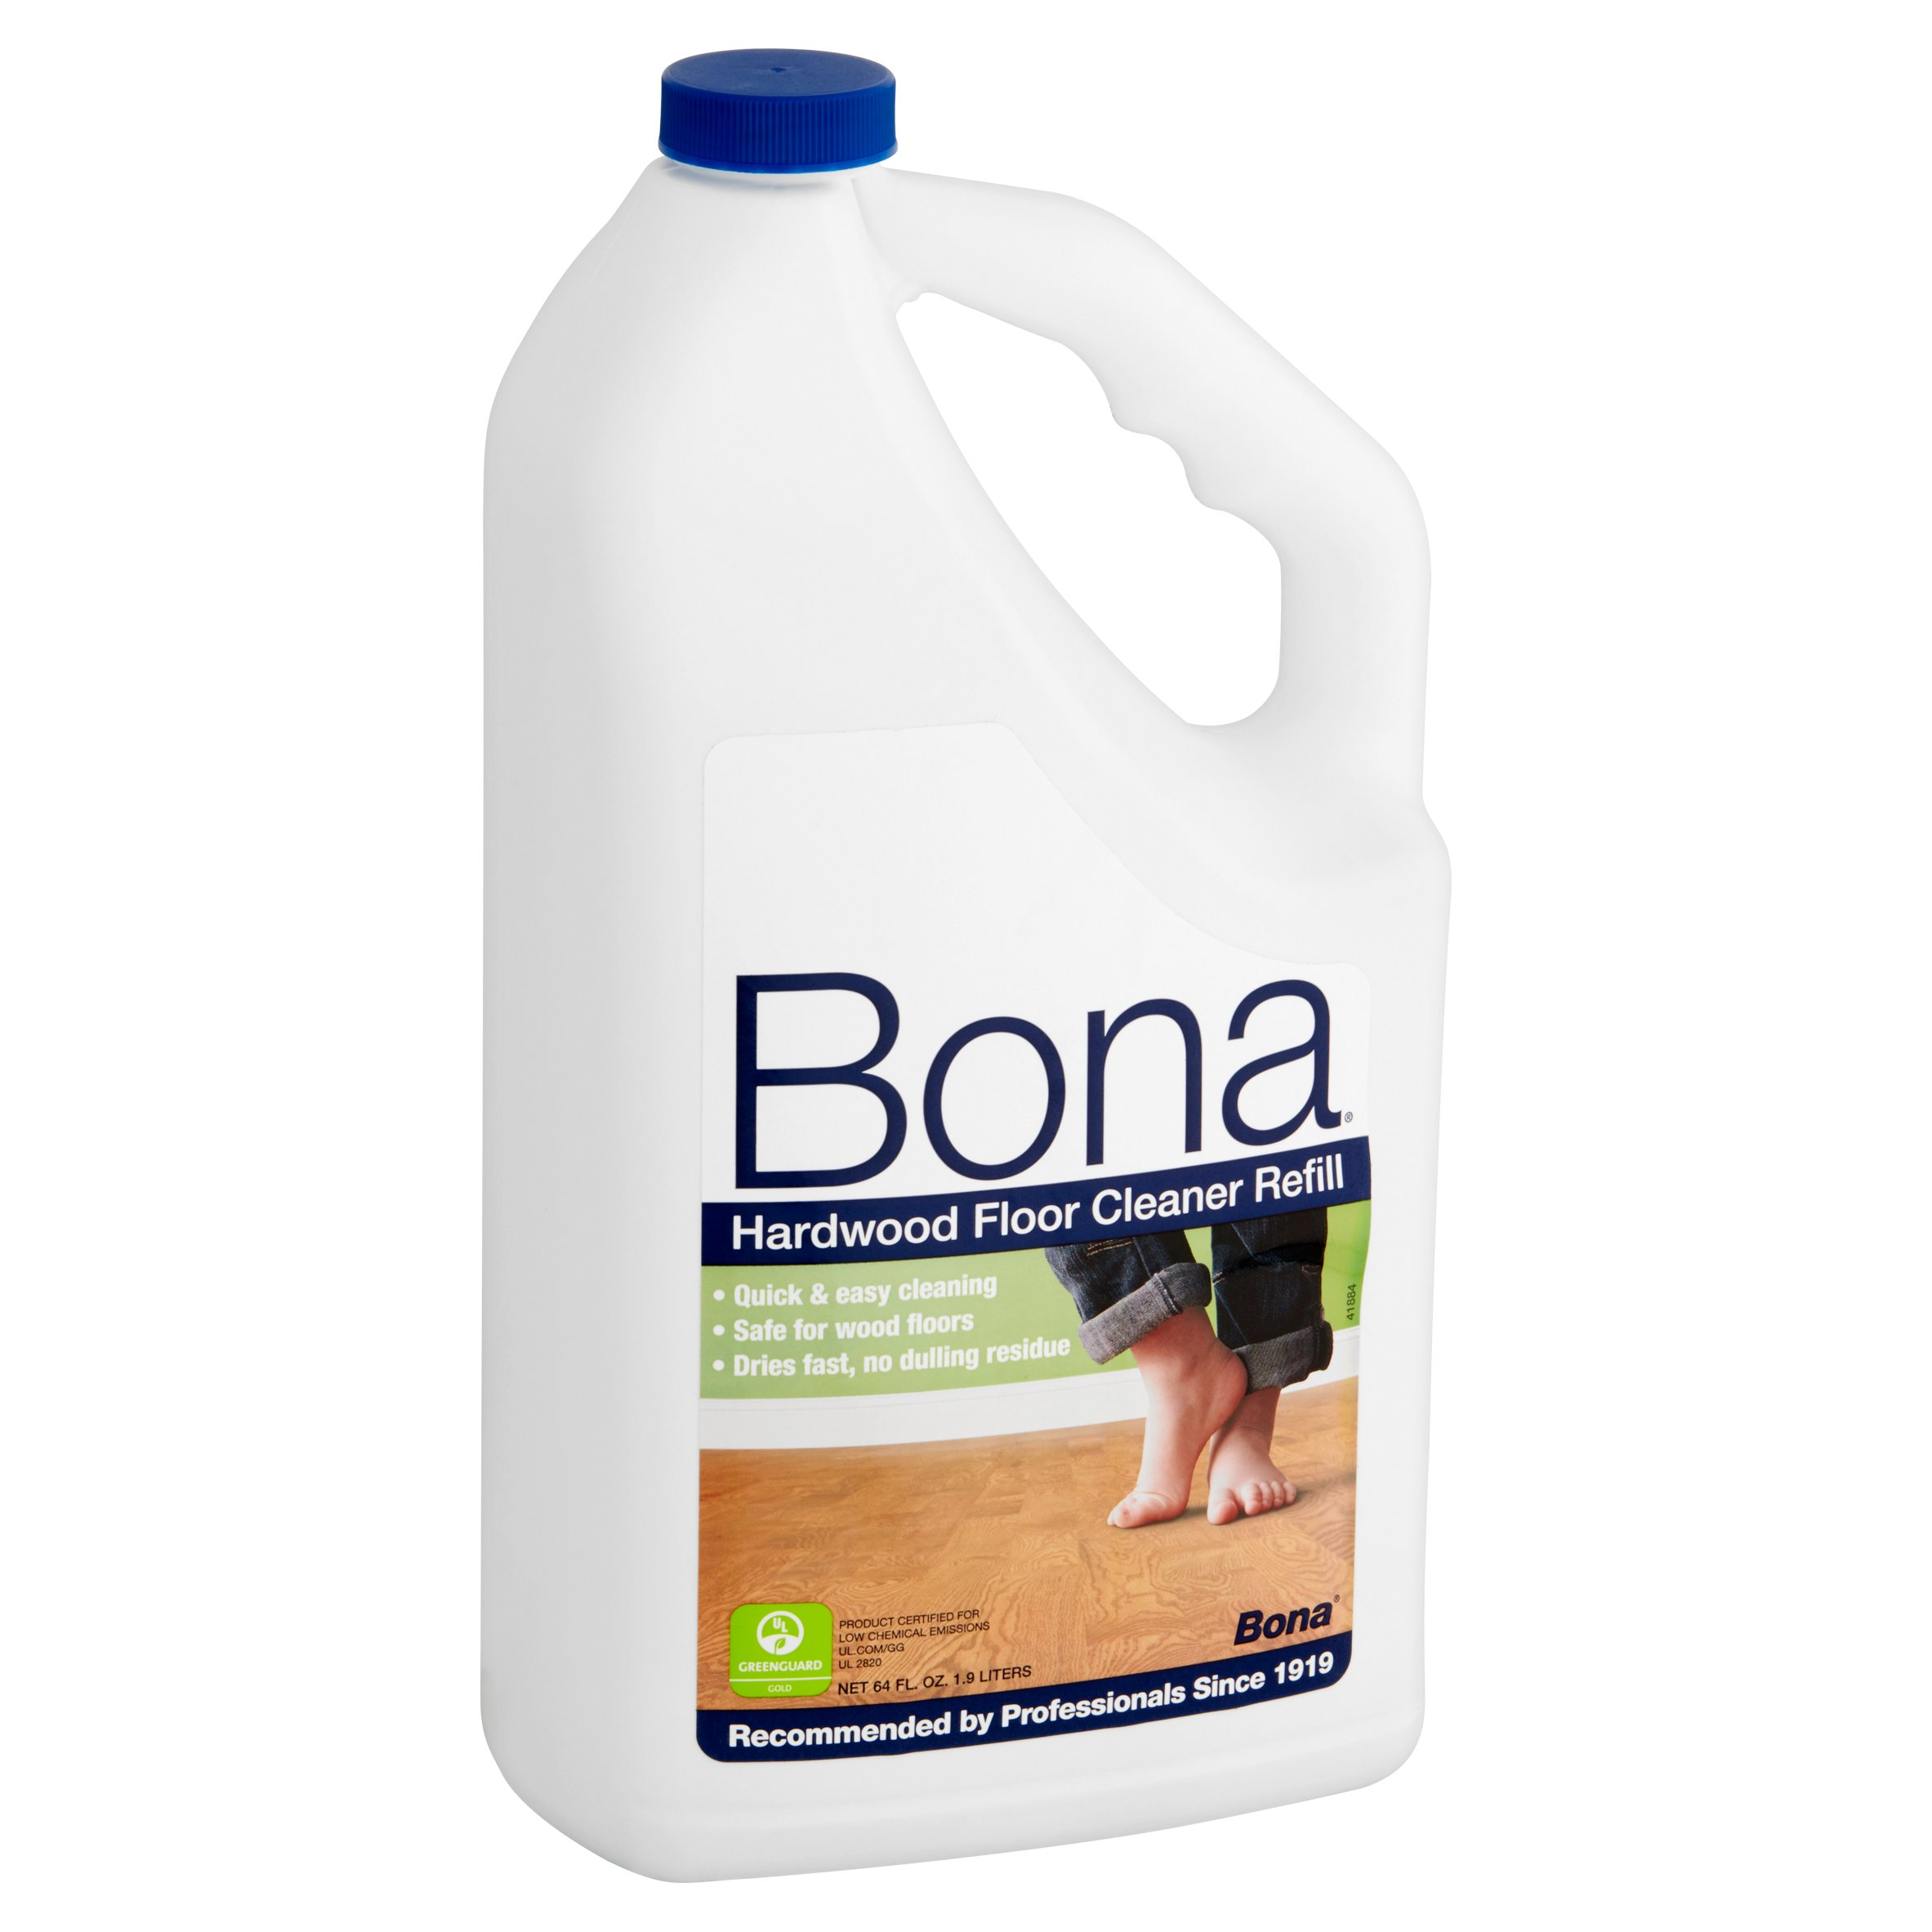 Bona swedish formula hardwood floor cleaner meze blog for Bona floor cleaner